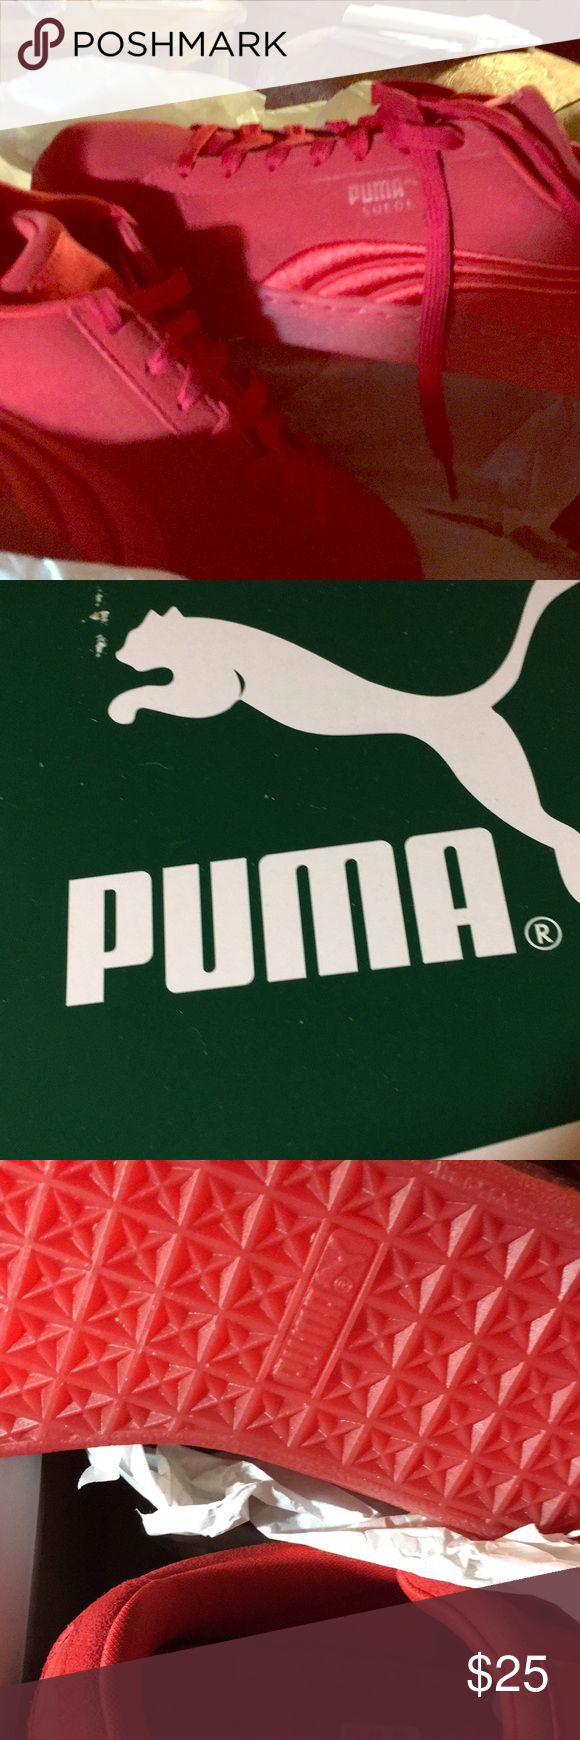 Tennis Shoes original PUMA red, size men's 11 Brand new never even tried on original PUMA tennis shoes, men's size 11.  In the original box wrapped in paper!  Color RED PUMA SUEDE Shoes Sneakers